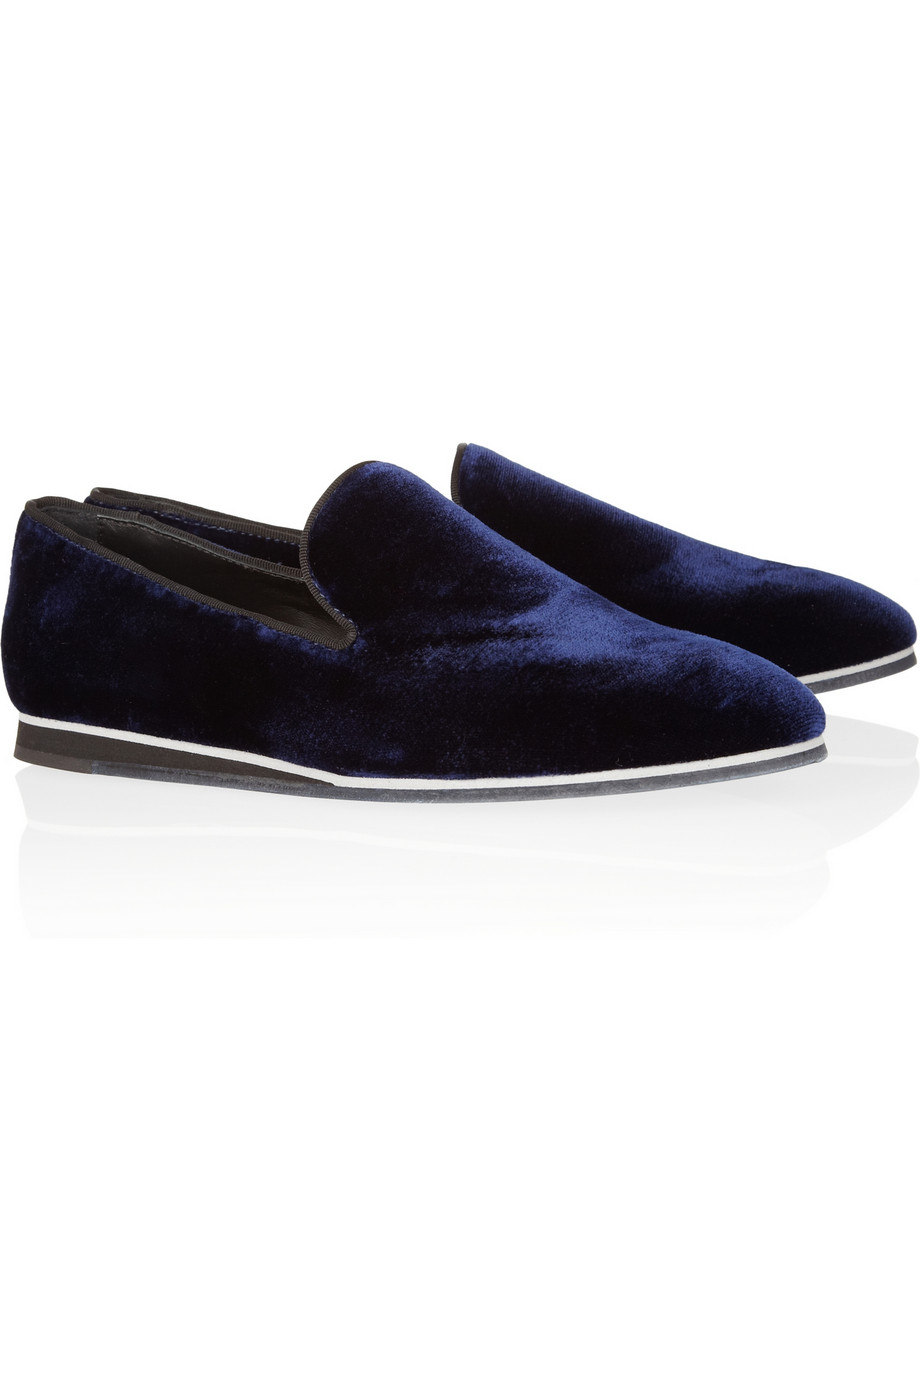 1ef7430845b Lyst - Tod s Velvet Loafers in Blue